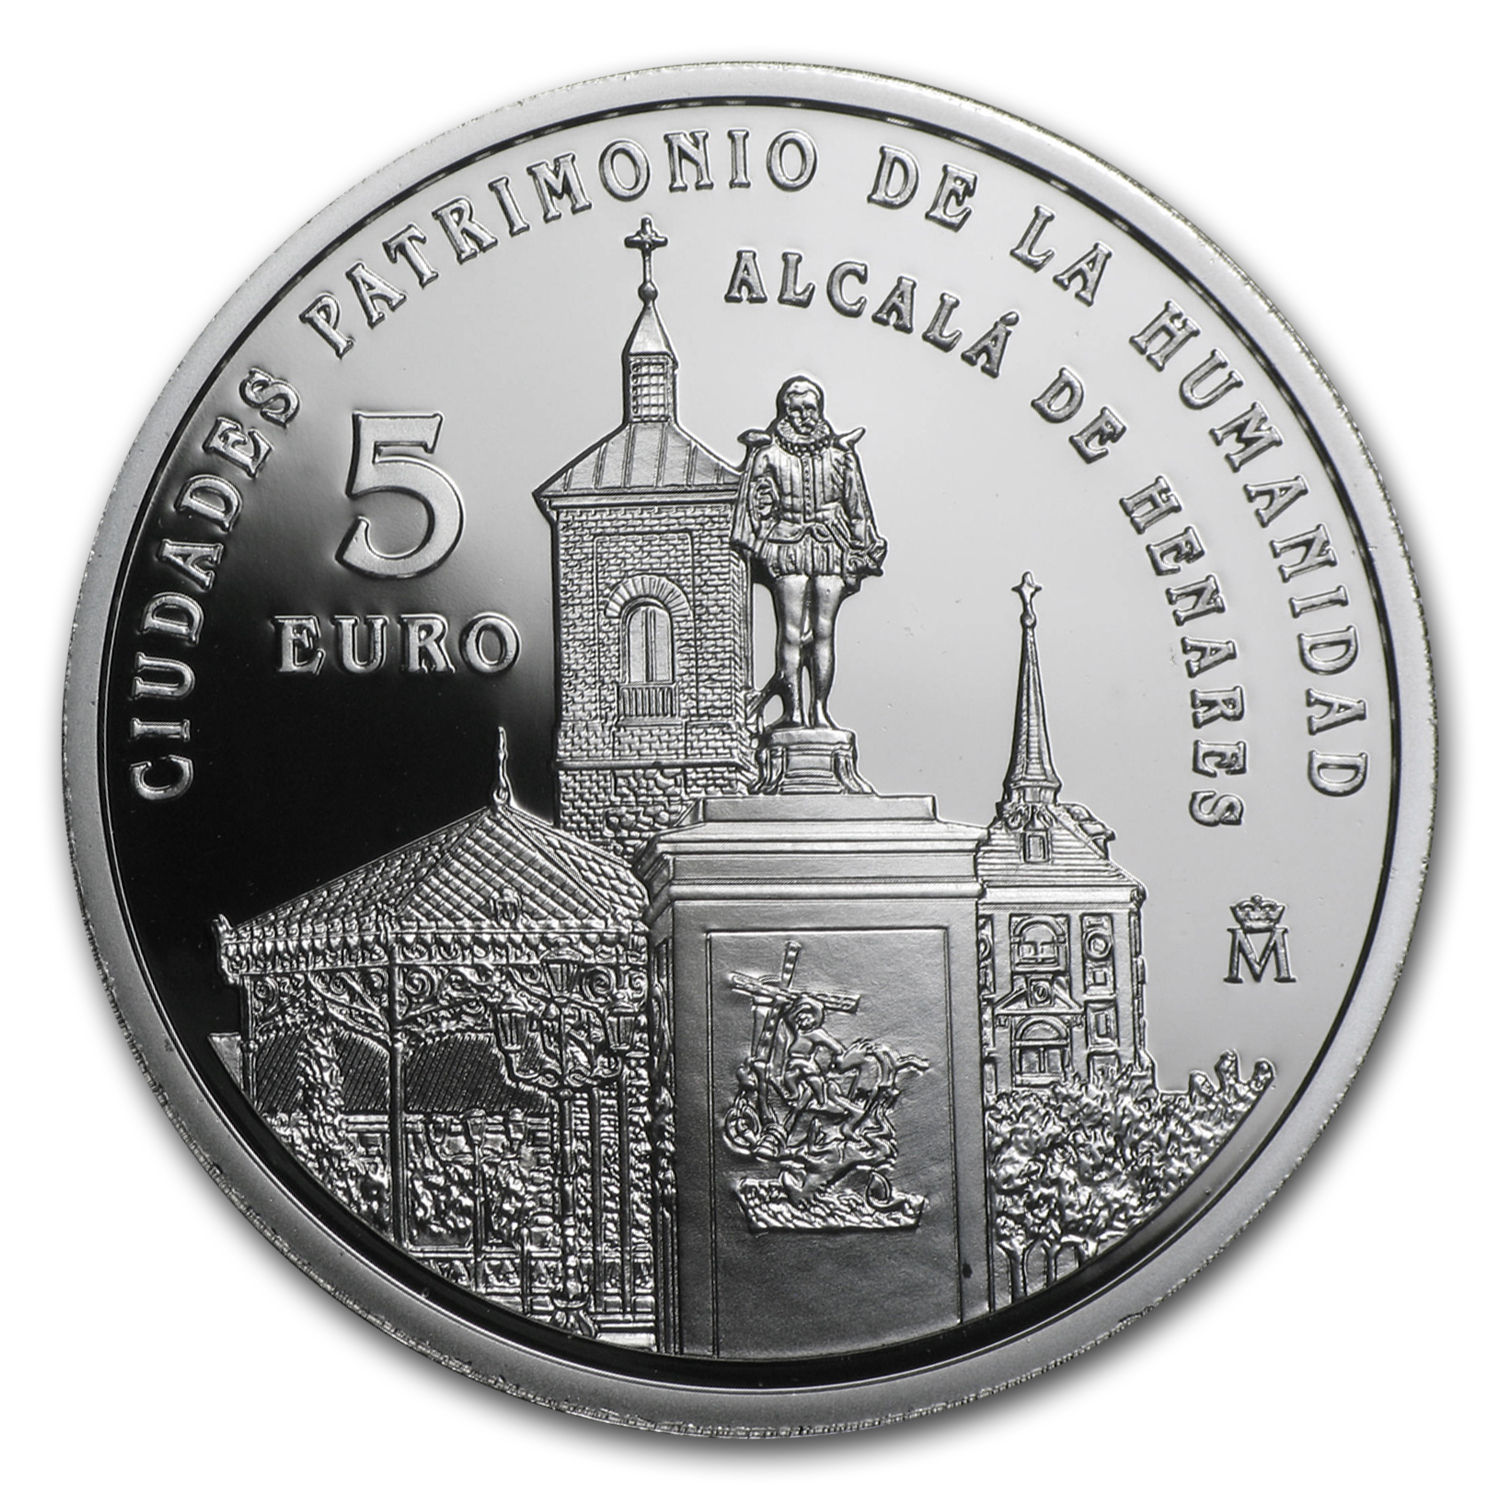 2014 Spain Proof Silver €5 UNESCO Alcalà de Henares